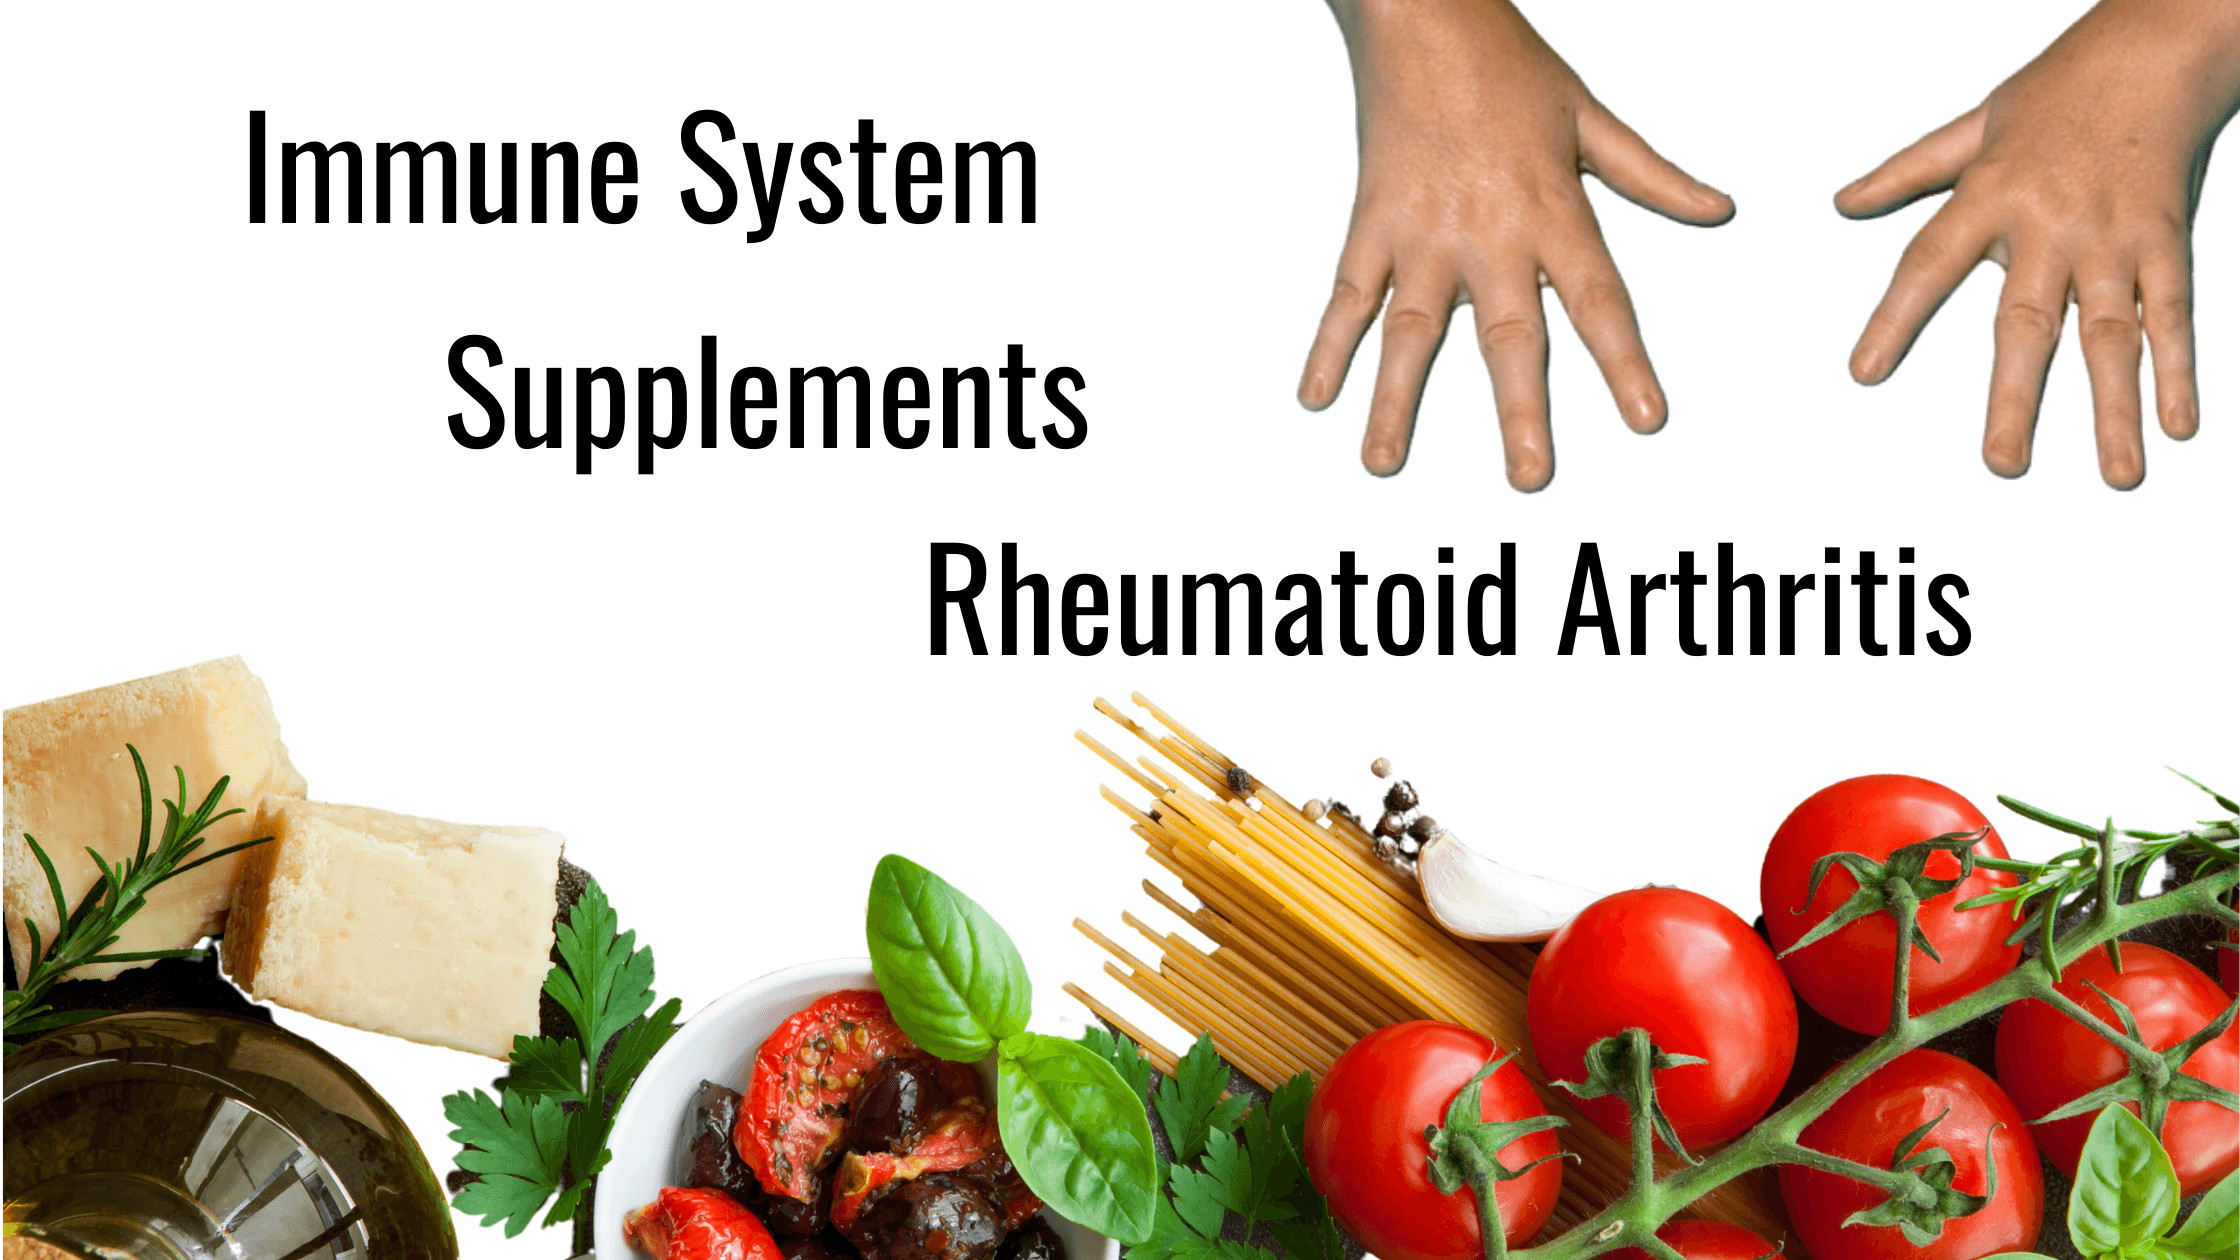 IMMUNE-SYSTEM-SUPPLEMENTS-HELP-WITH-RHEUMATOID-ARTHRITIS